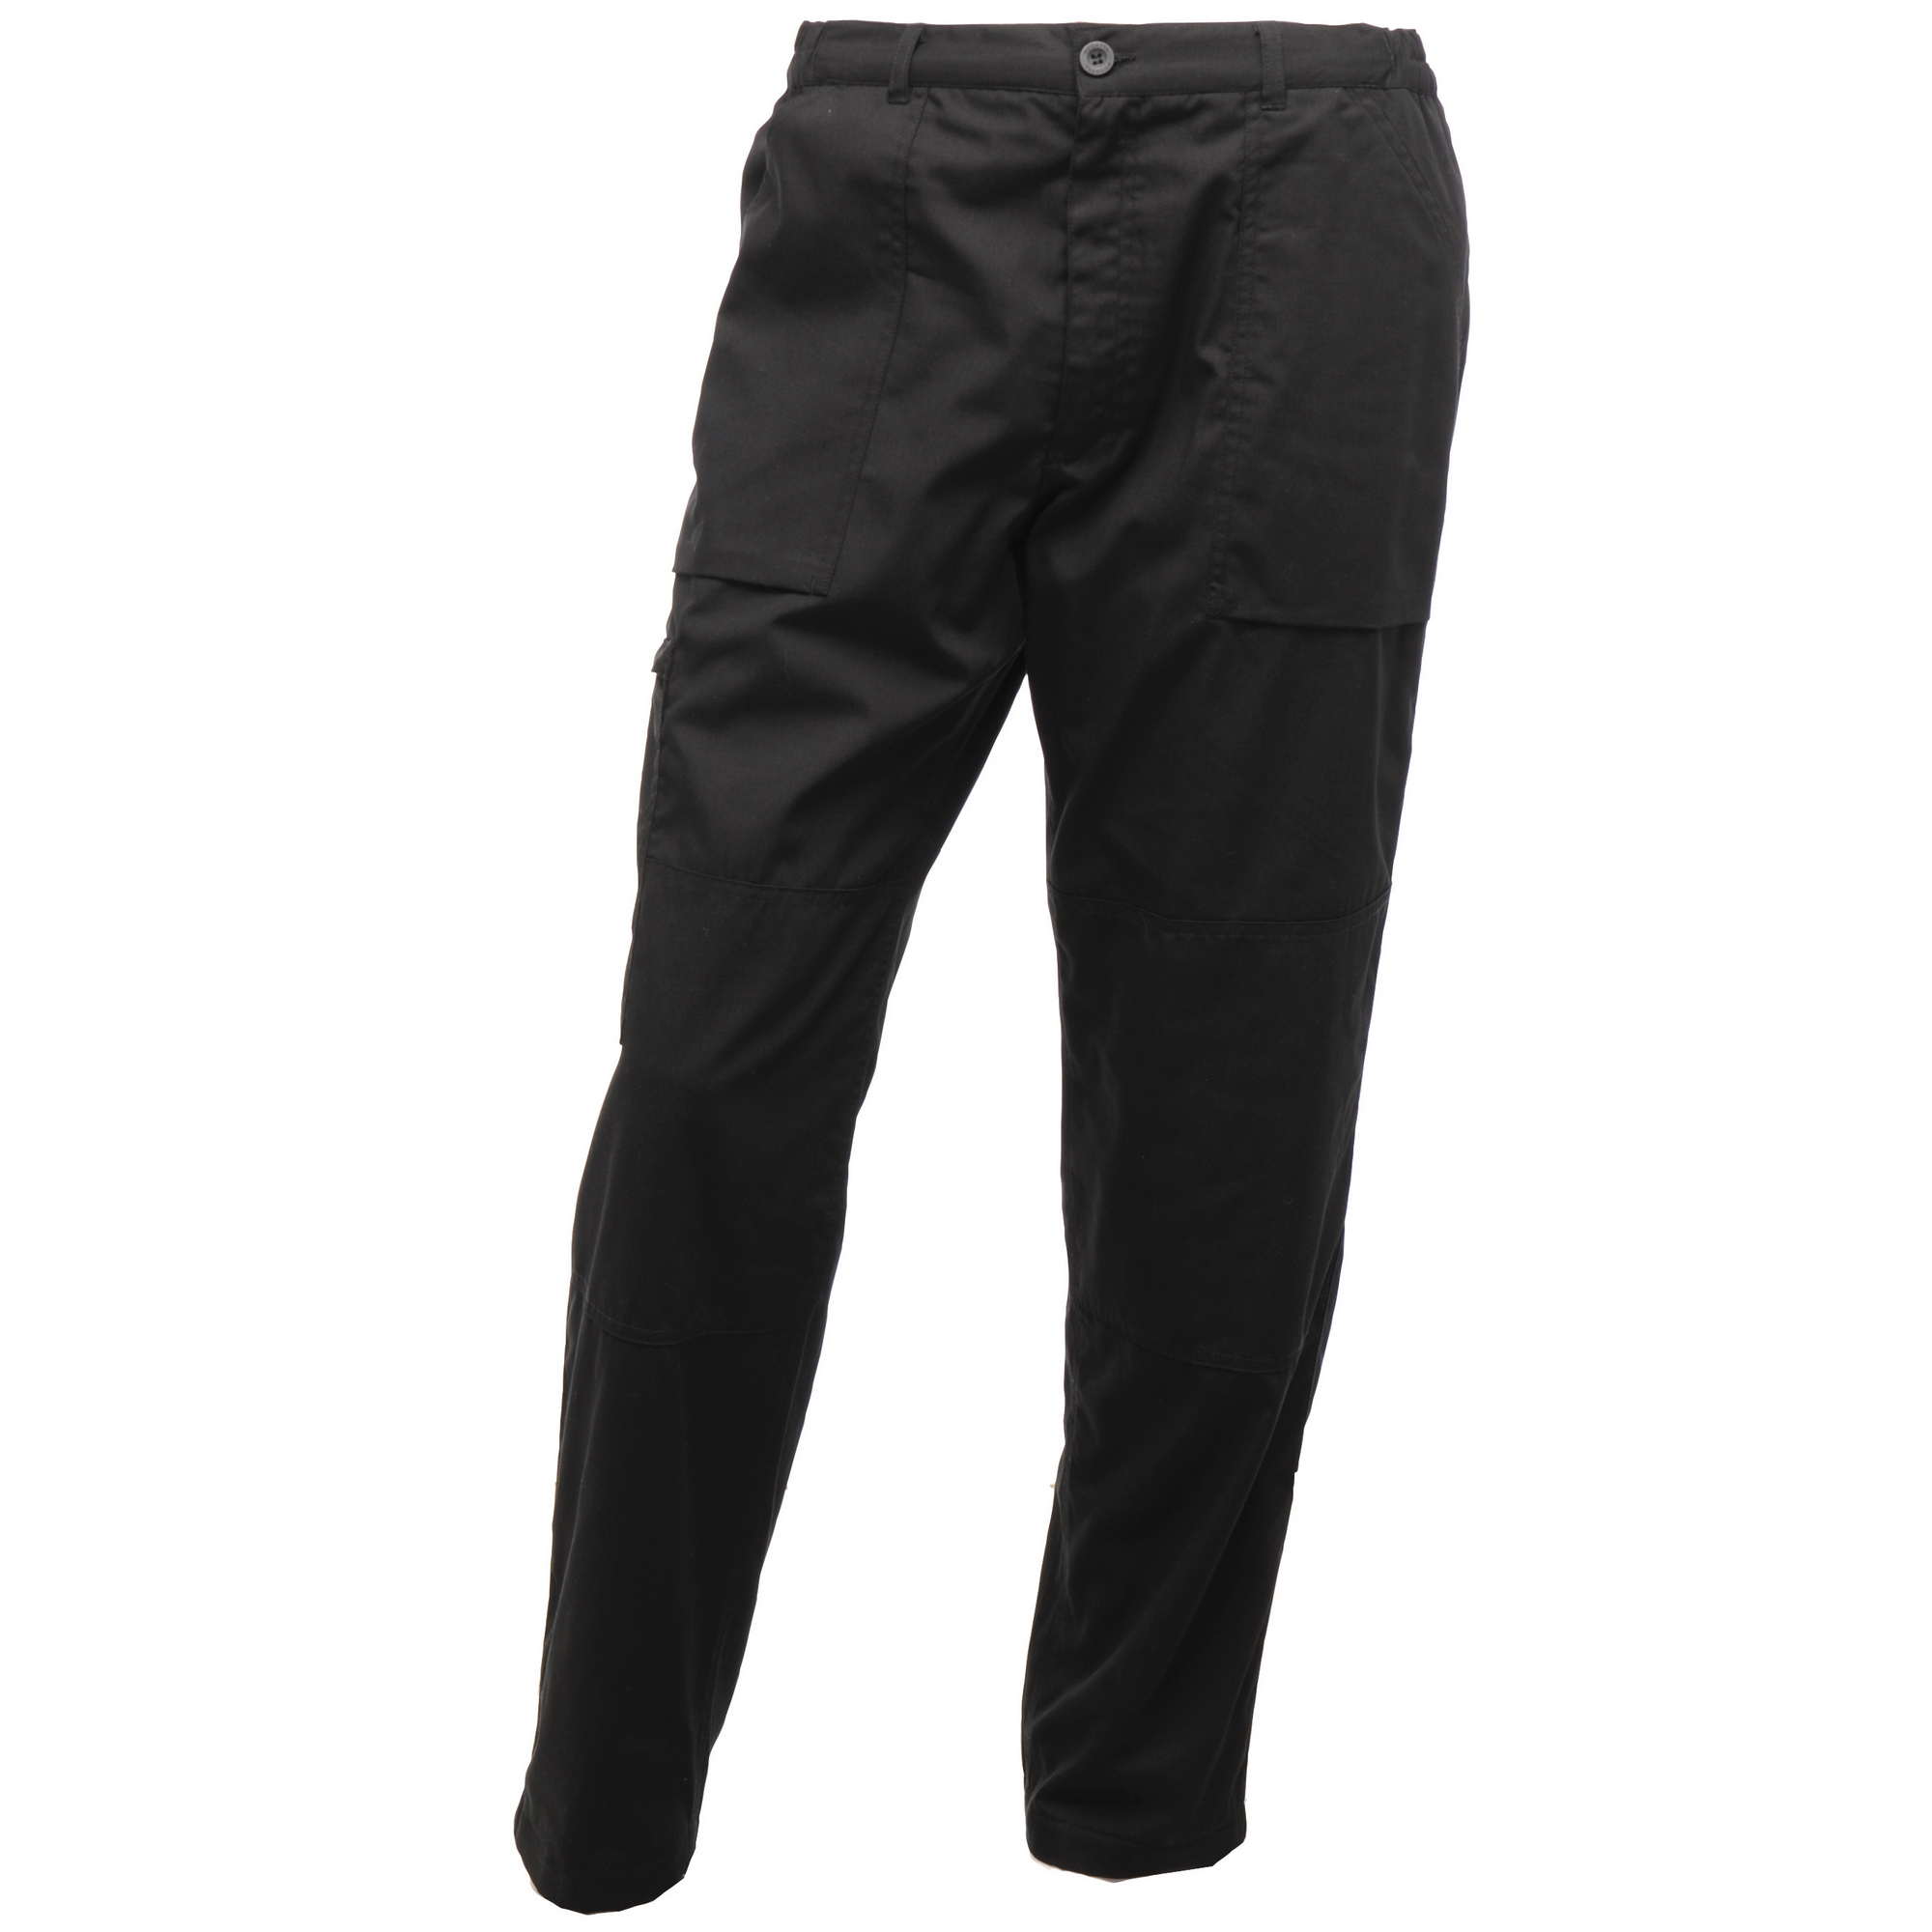 Regatta Mens Sports New Lined Action Trousers (40 x Long) (Black)